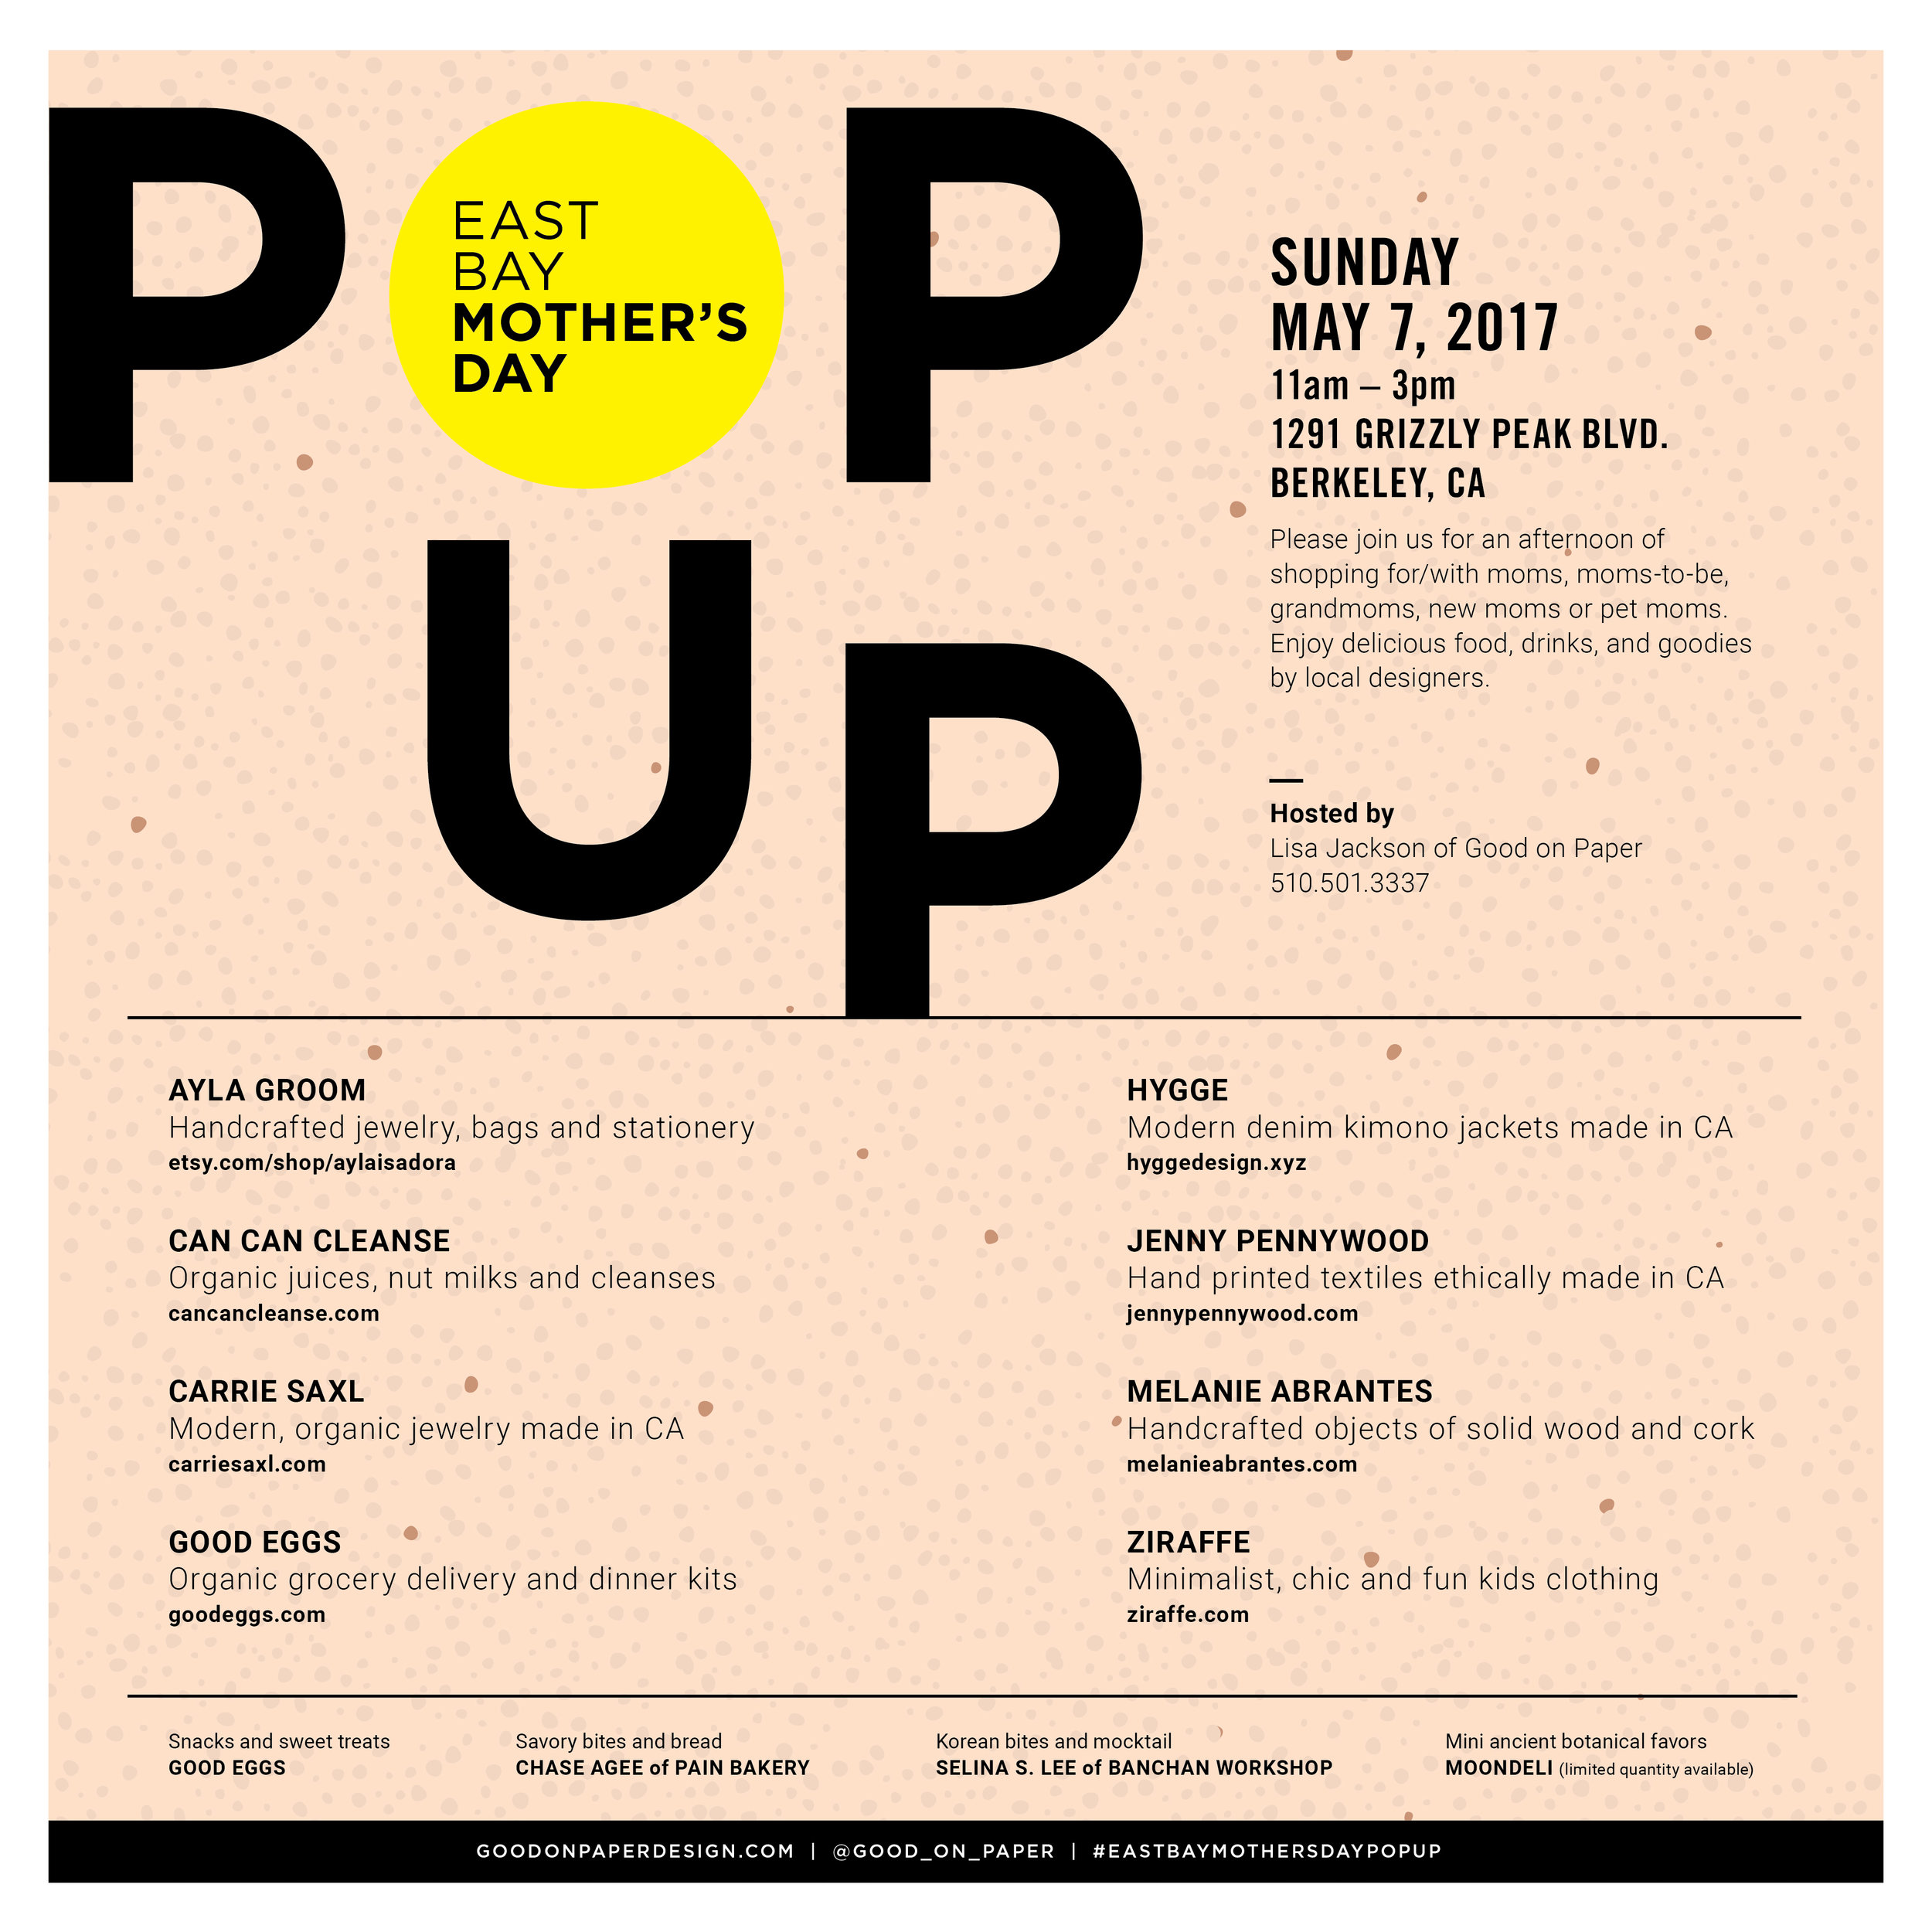 East Bay Mother's Day Pop Up  /  www.goodonpaperdesign.com/blog/2017/4/15/east-bay-mothers-day-pop-up  /  @good_on_paper